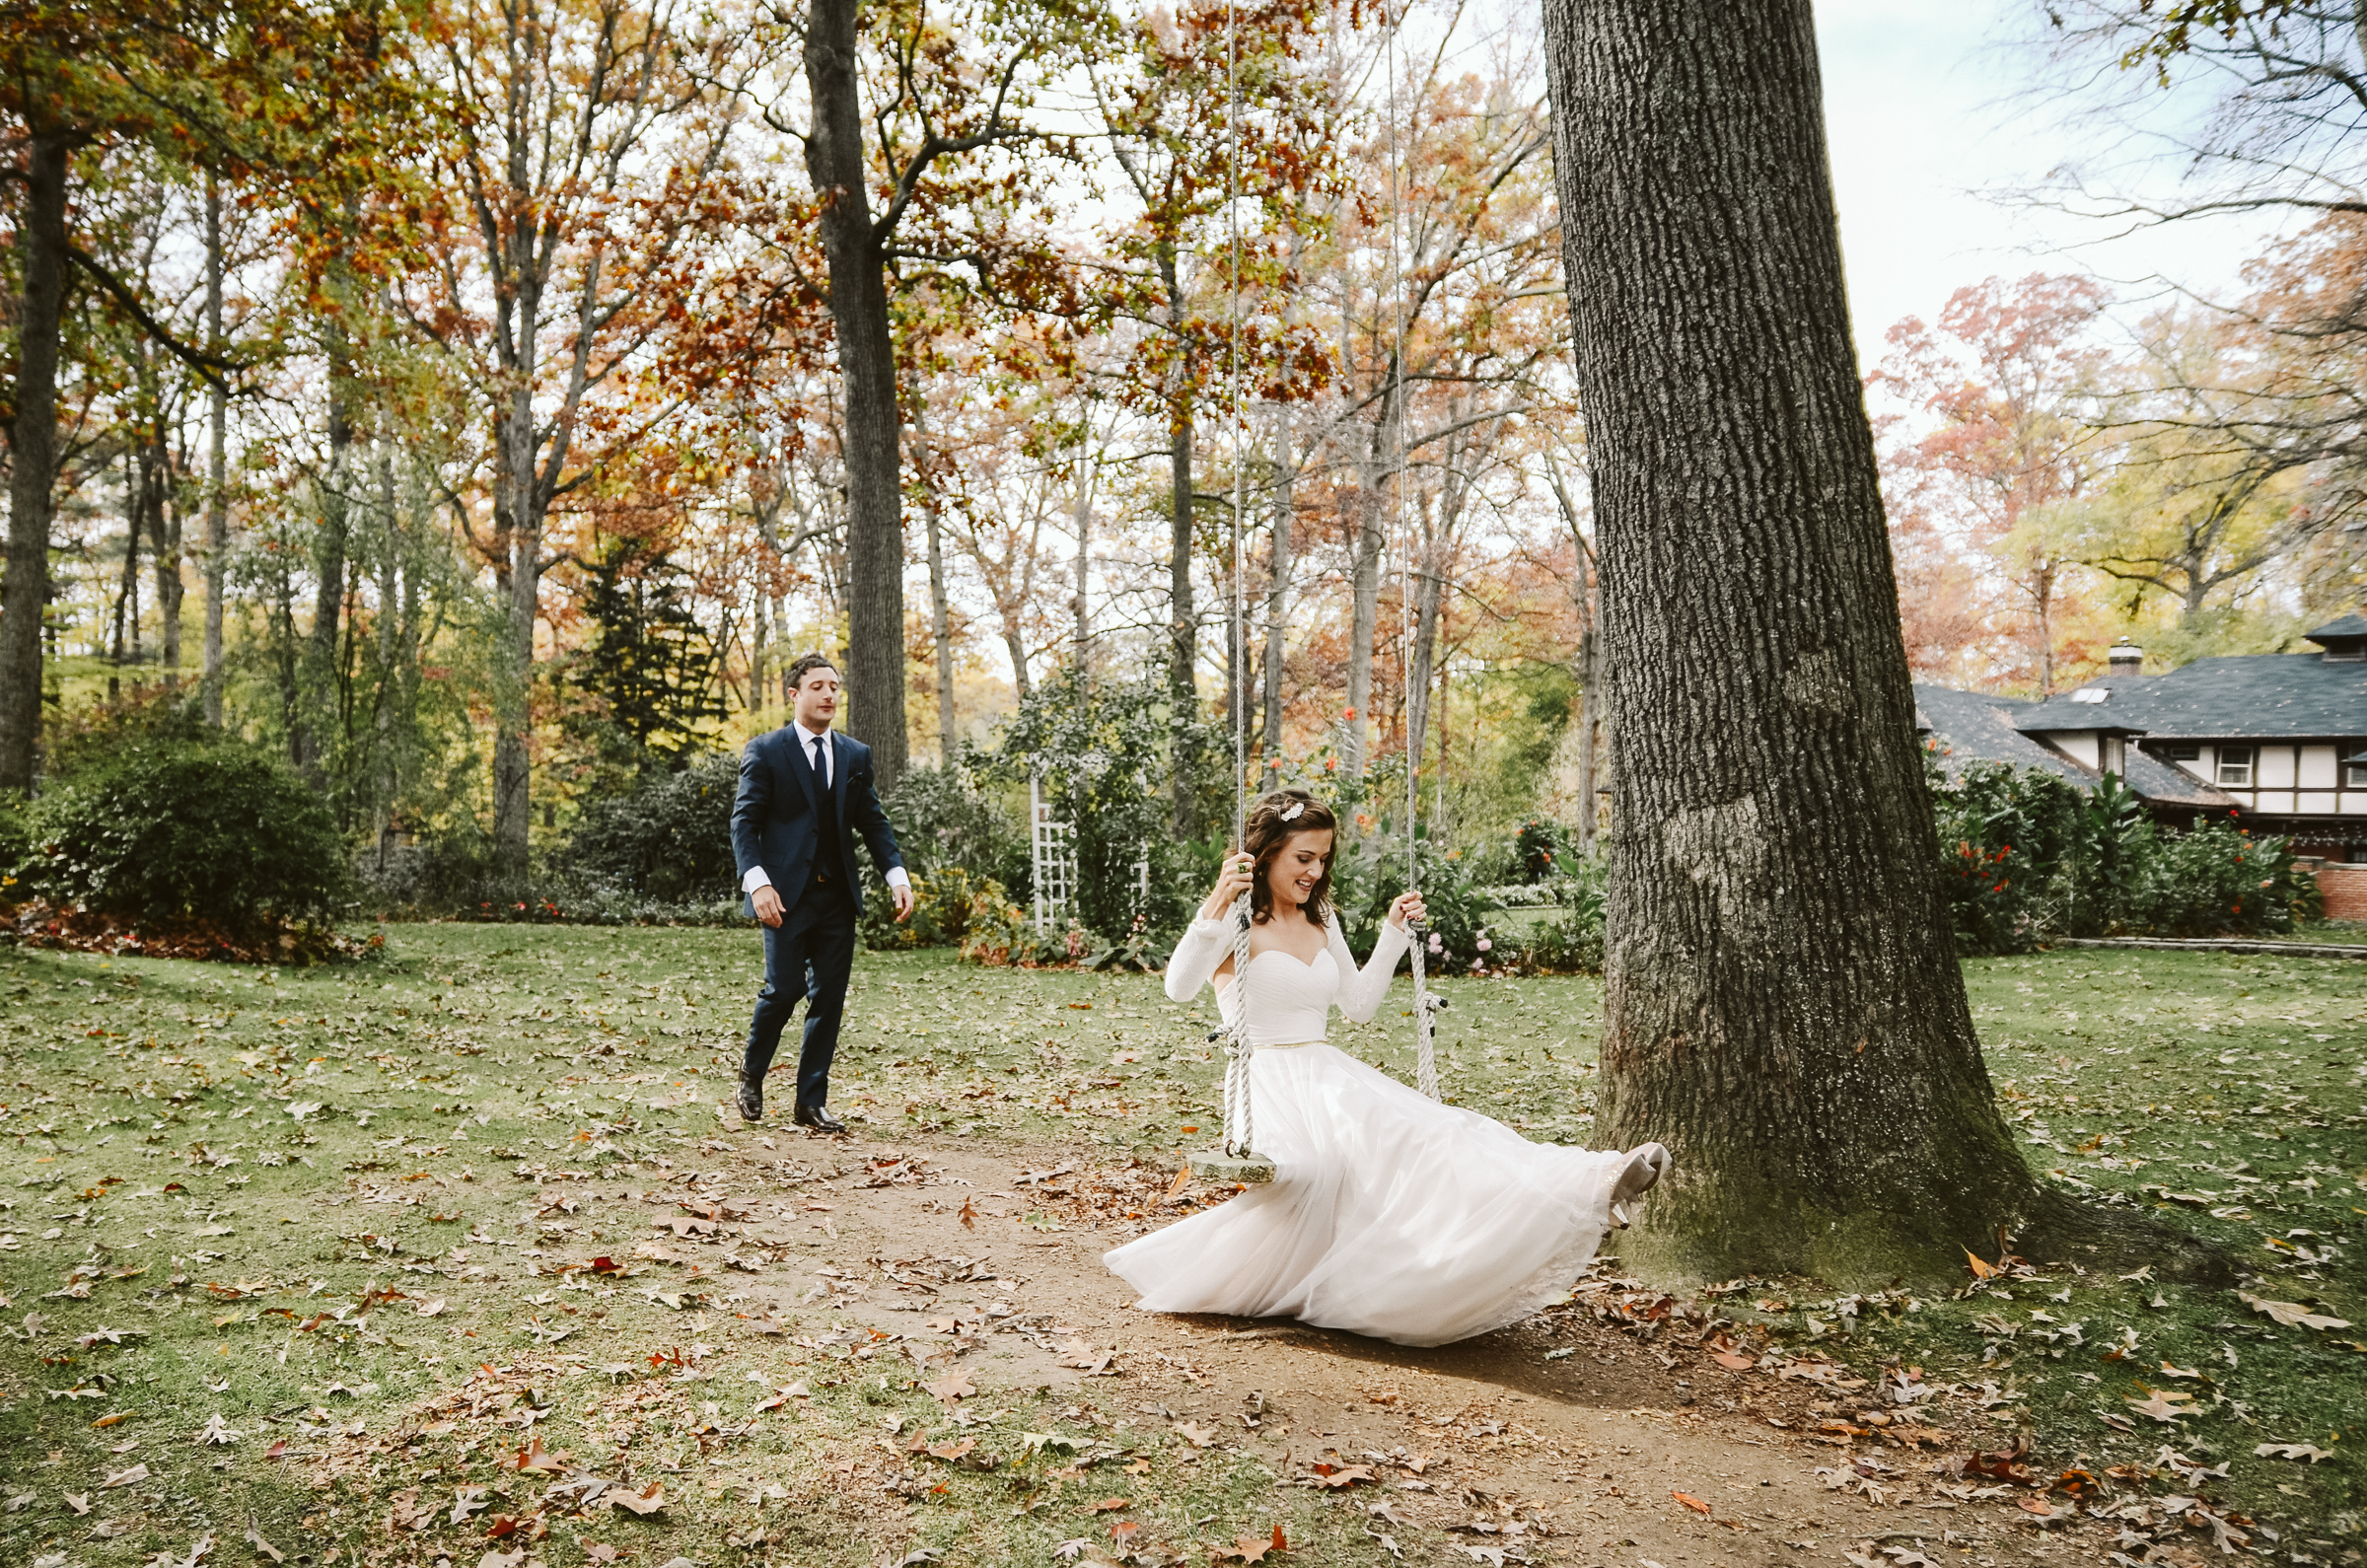 Jen and Drew's Wedding Edited 2019 web-16.jpg